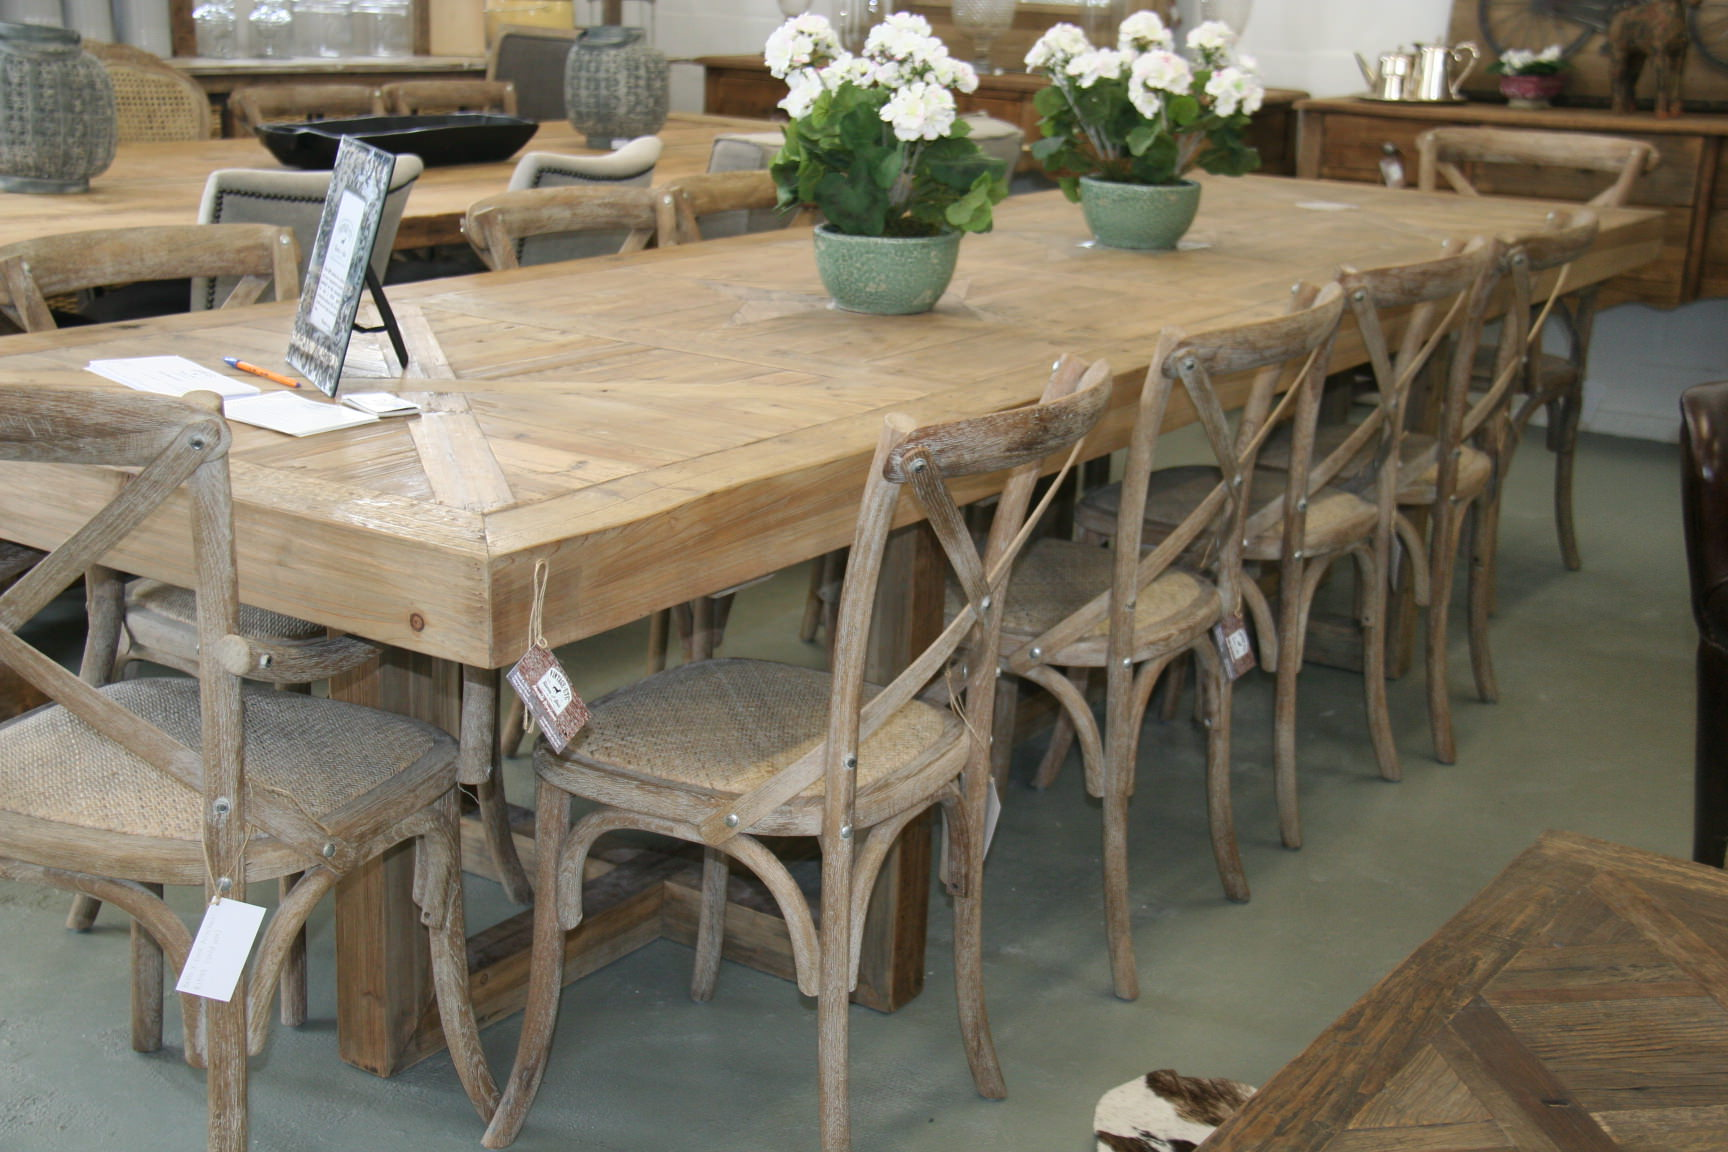 Dining Room Table Seats 12 for Big Family | HomesFeed